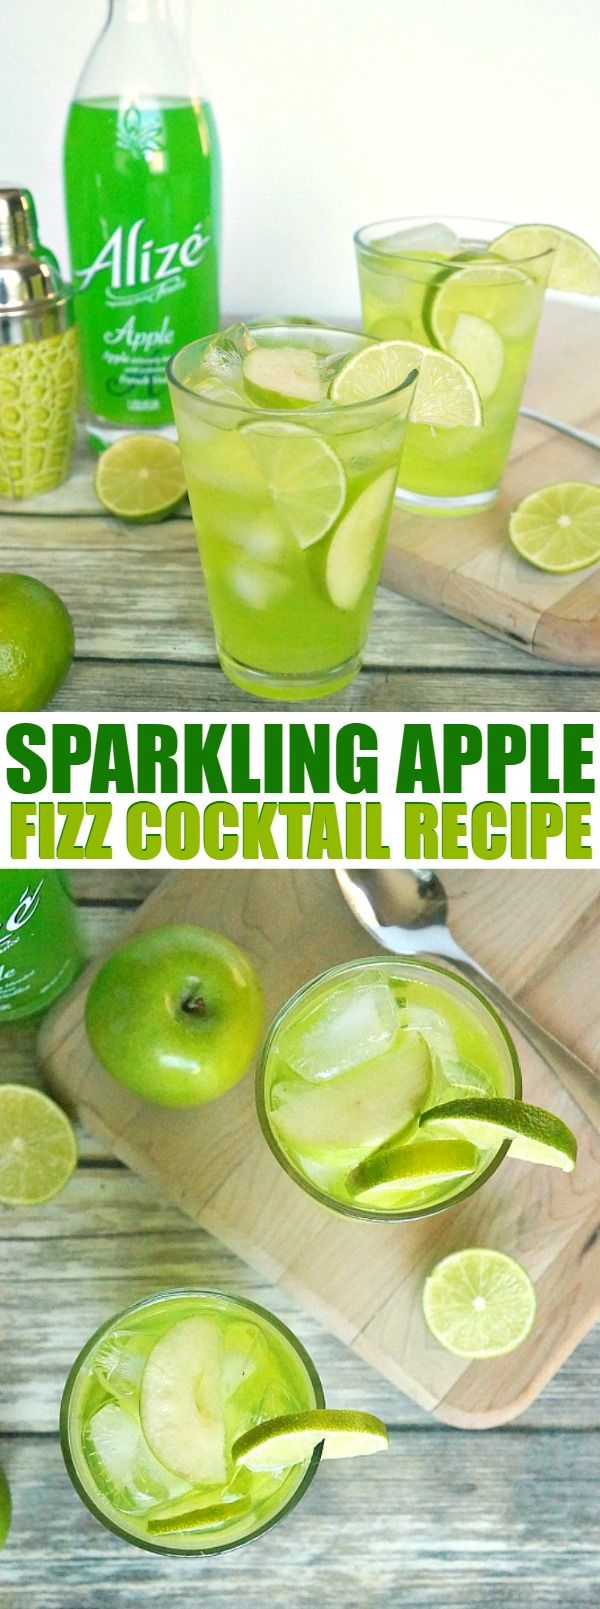 Sweet Sparkling Apple Fizz Cocktail Recipe - this apple cocktail recipe is made with Alizé Apple French Vodka, so delicious and refreshing! #ad #AlizeApple